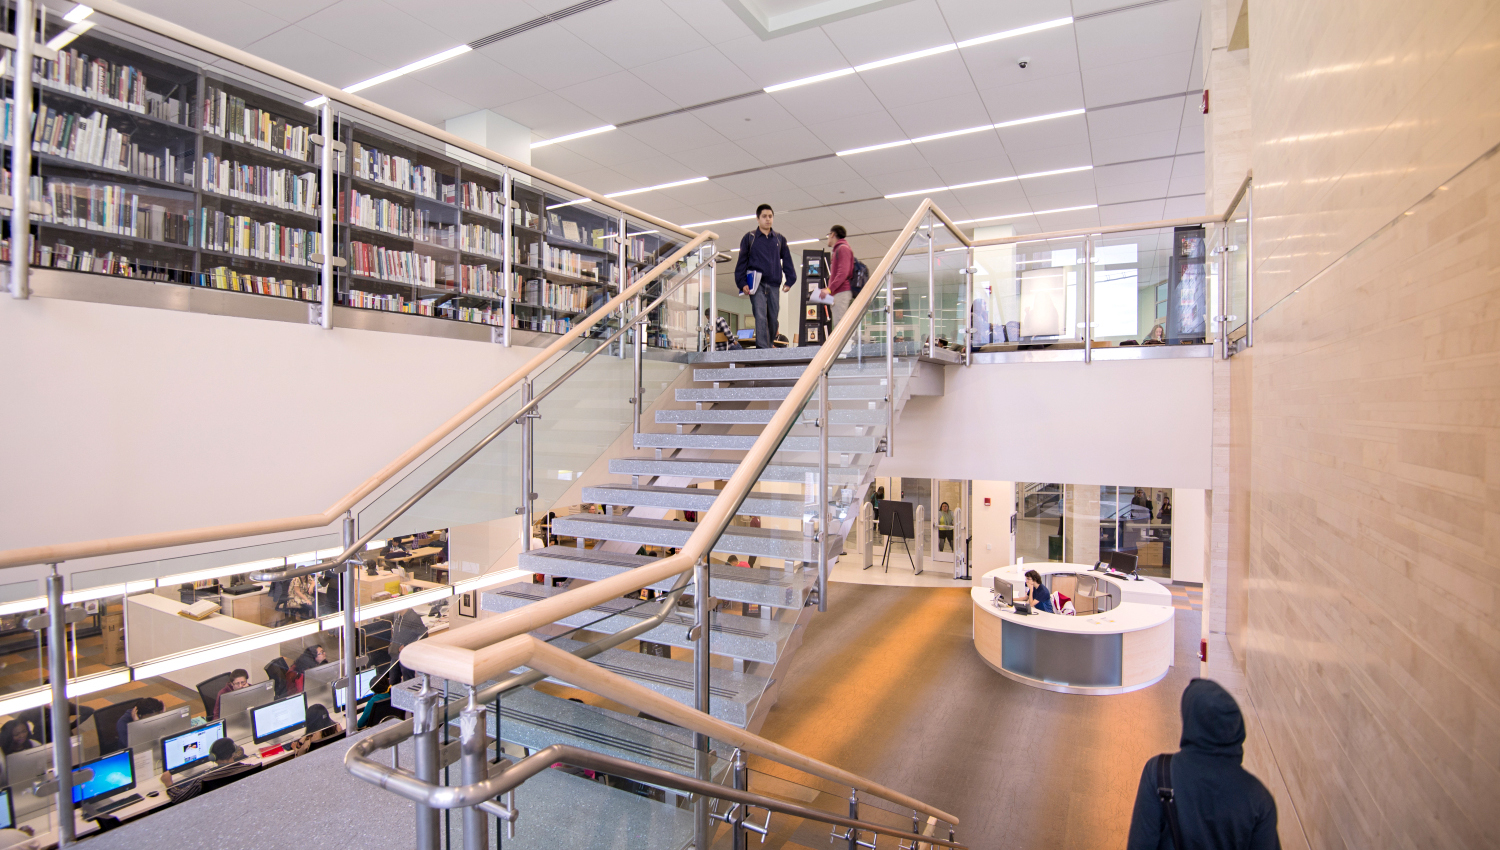 Hudson County Community College Library & Academic Building